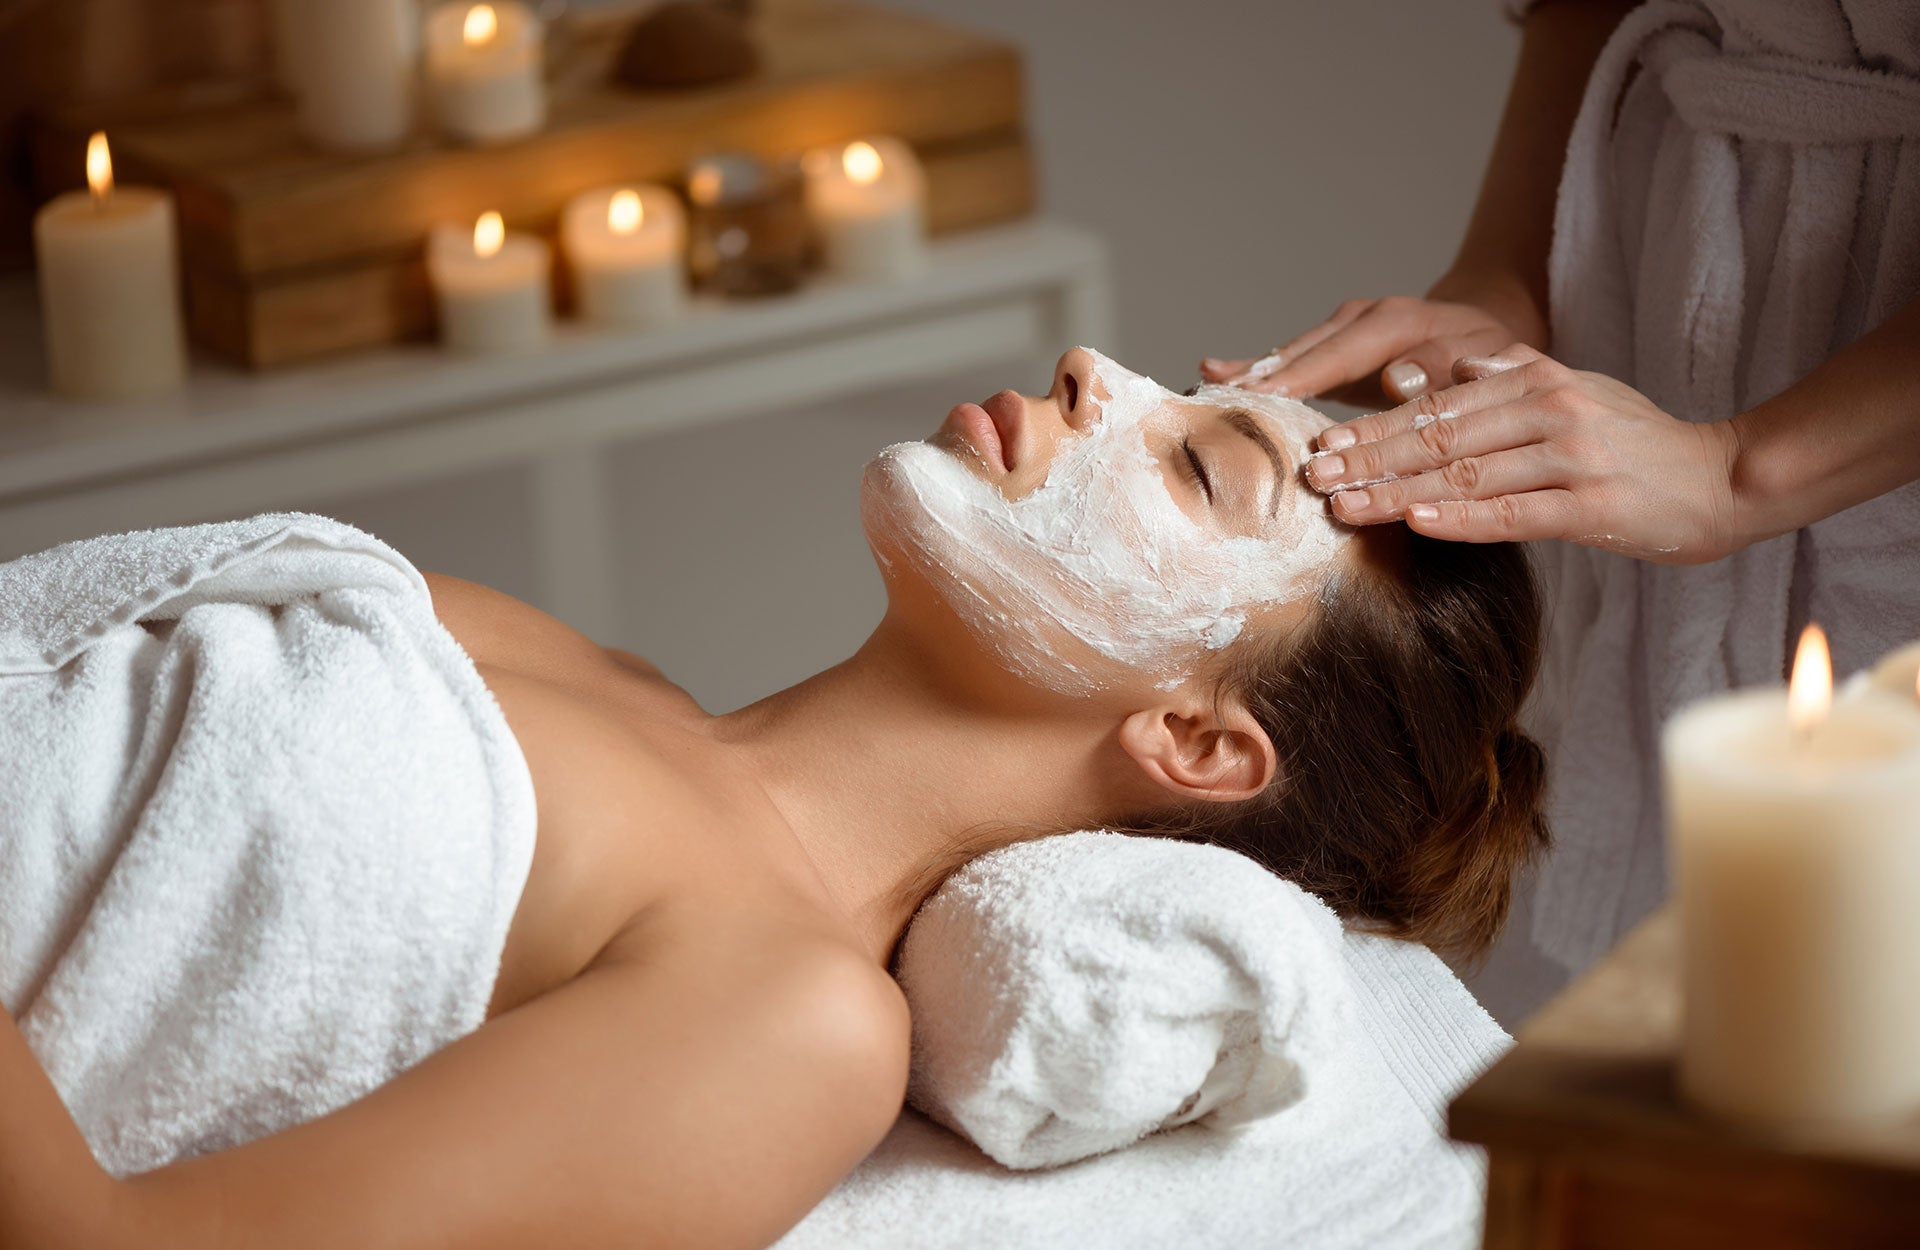 Why become a beauty/spa therapist